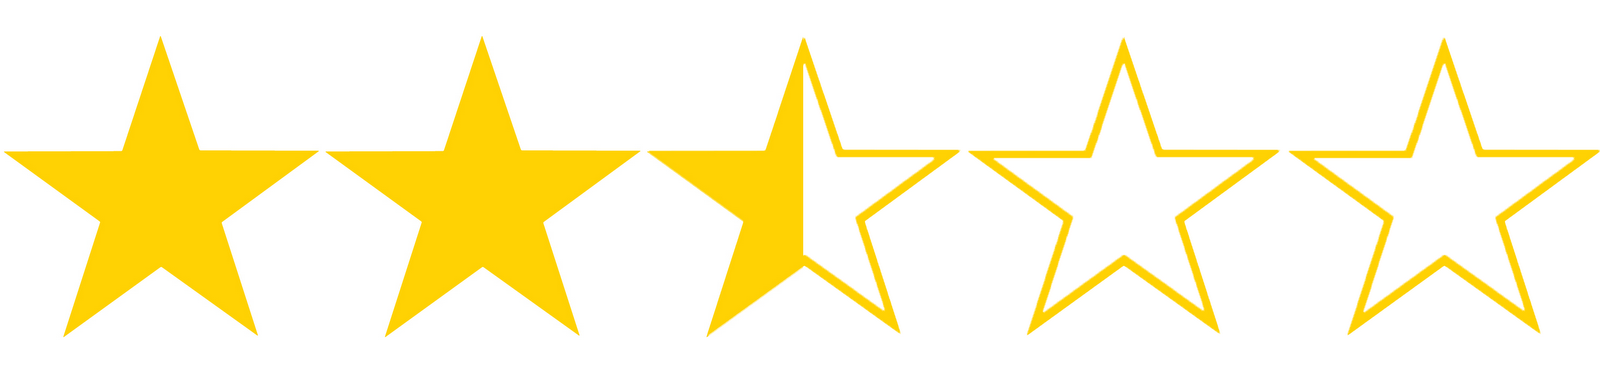 two_half-stars_0.png